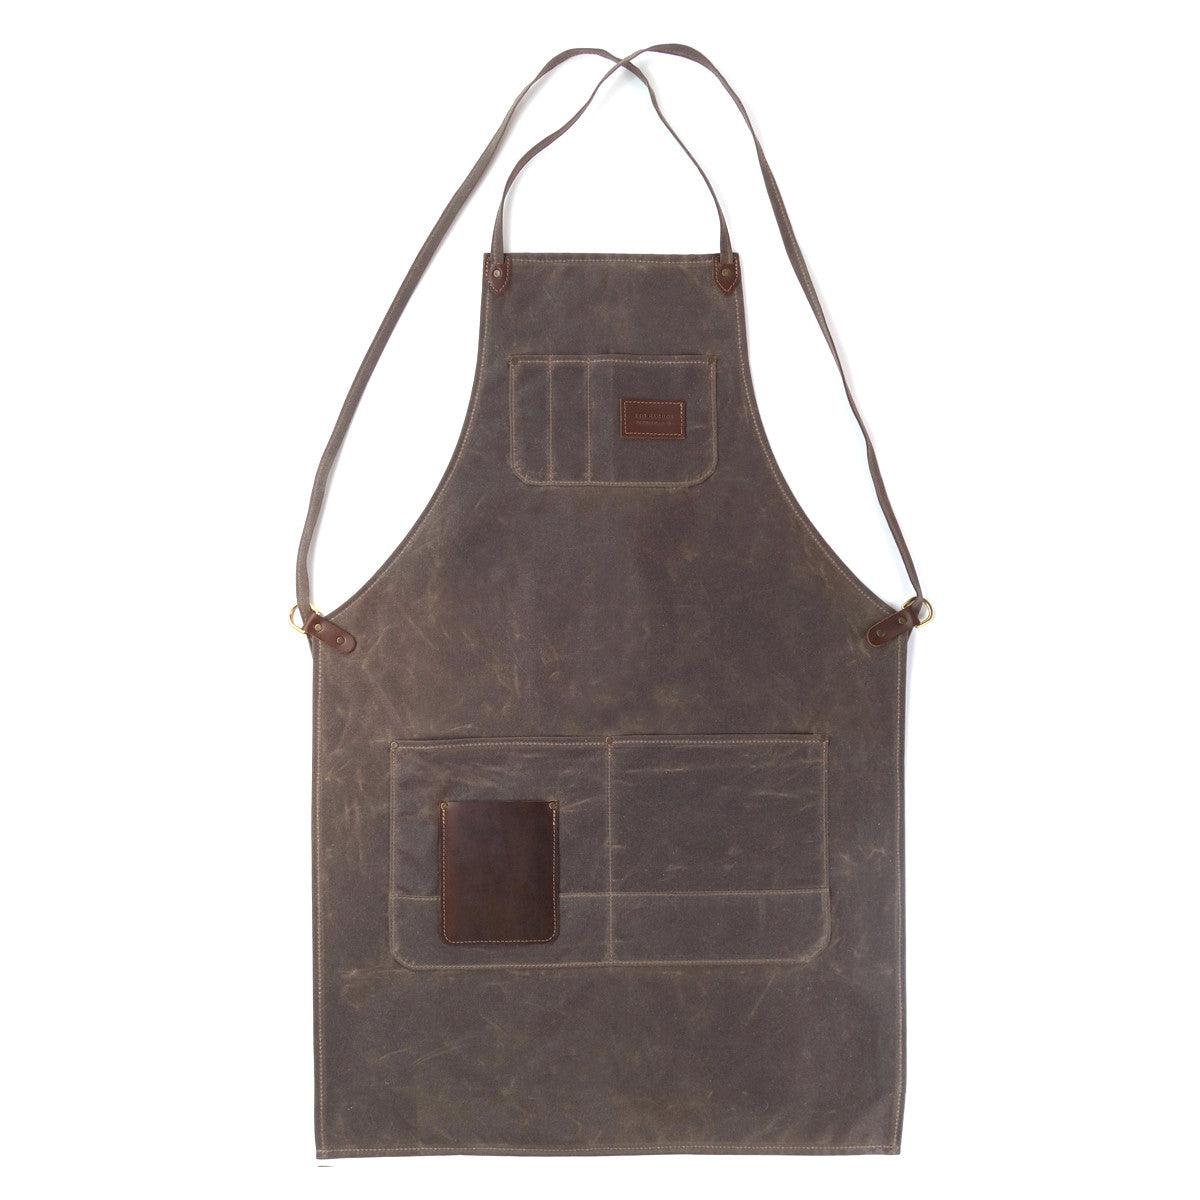 Winston apron, waxed canvas apron, red clouds apron, woodworking apron, metalworking apron, hand eye supply, shop gear, workwear, made in usa, made in portland, Drawing inspiration from classic shop aprons used by wood and metal workers for centuries, the Winston Apron combines a classic look and feel with modern feature and construction updates that enhance the product's longevity.